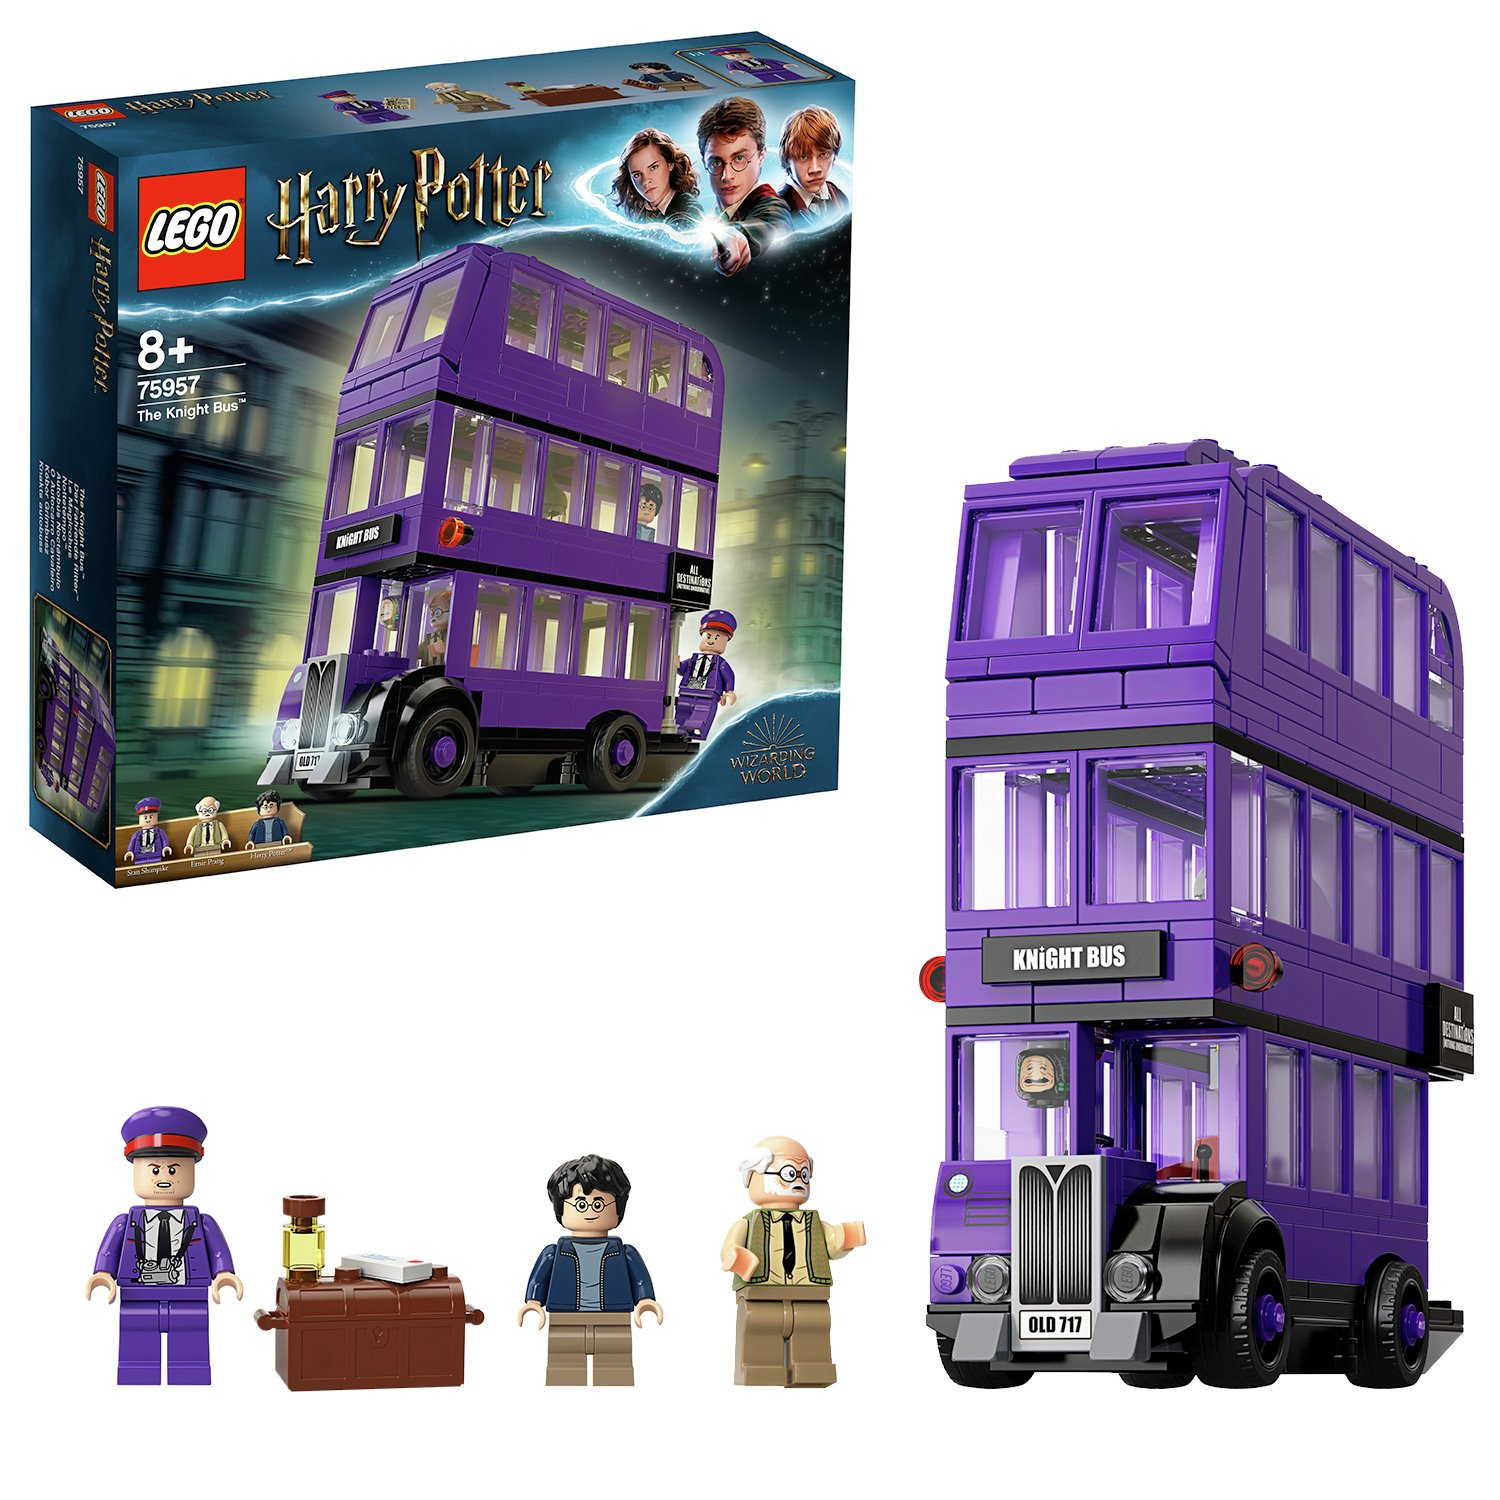 LEGO Harry Potter TM The Knight Bus - 75957